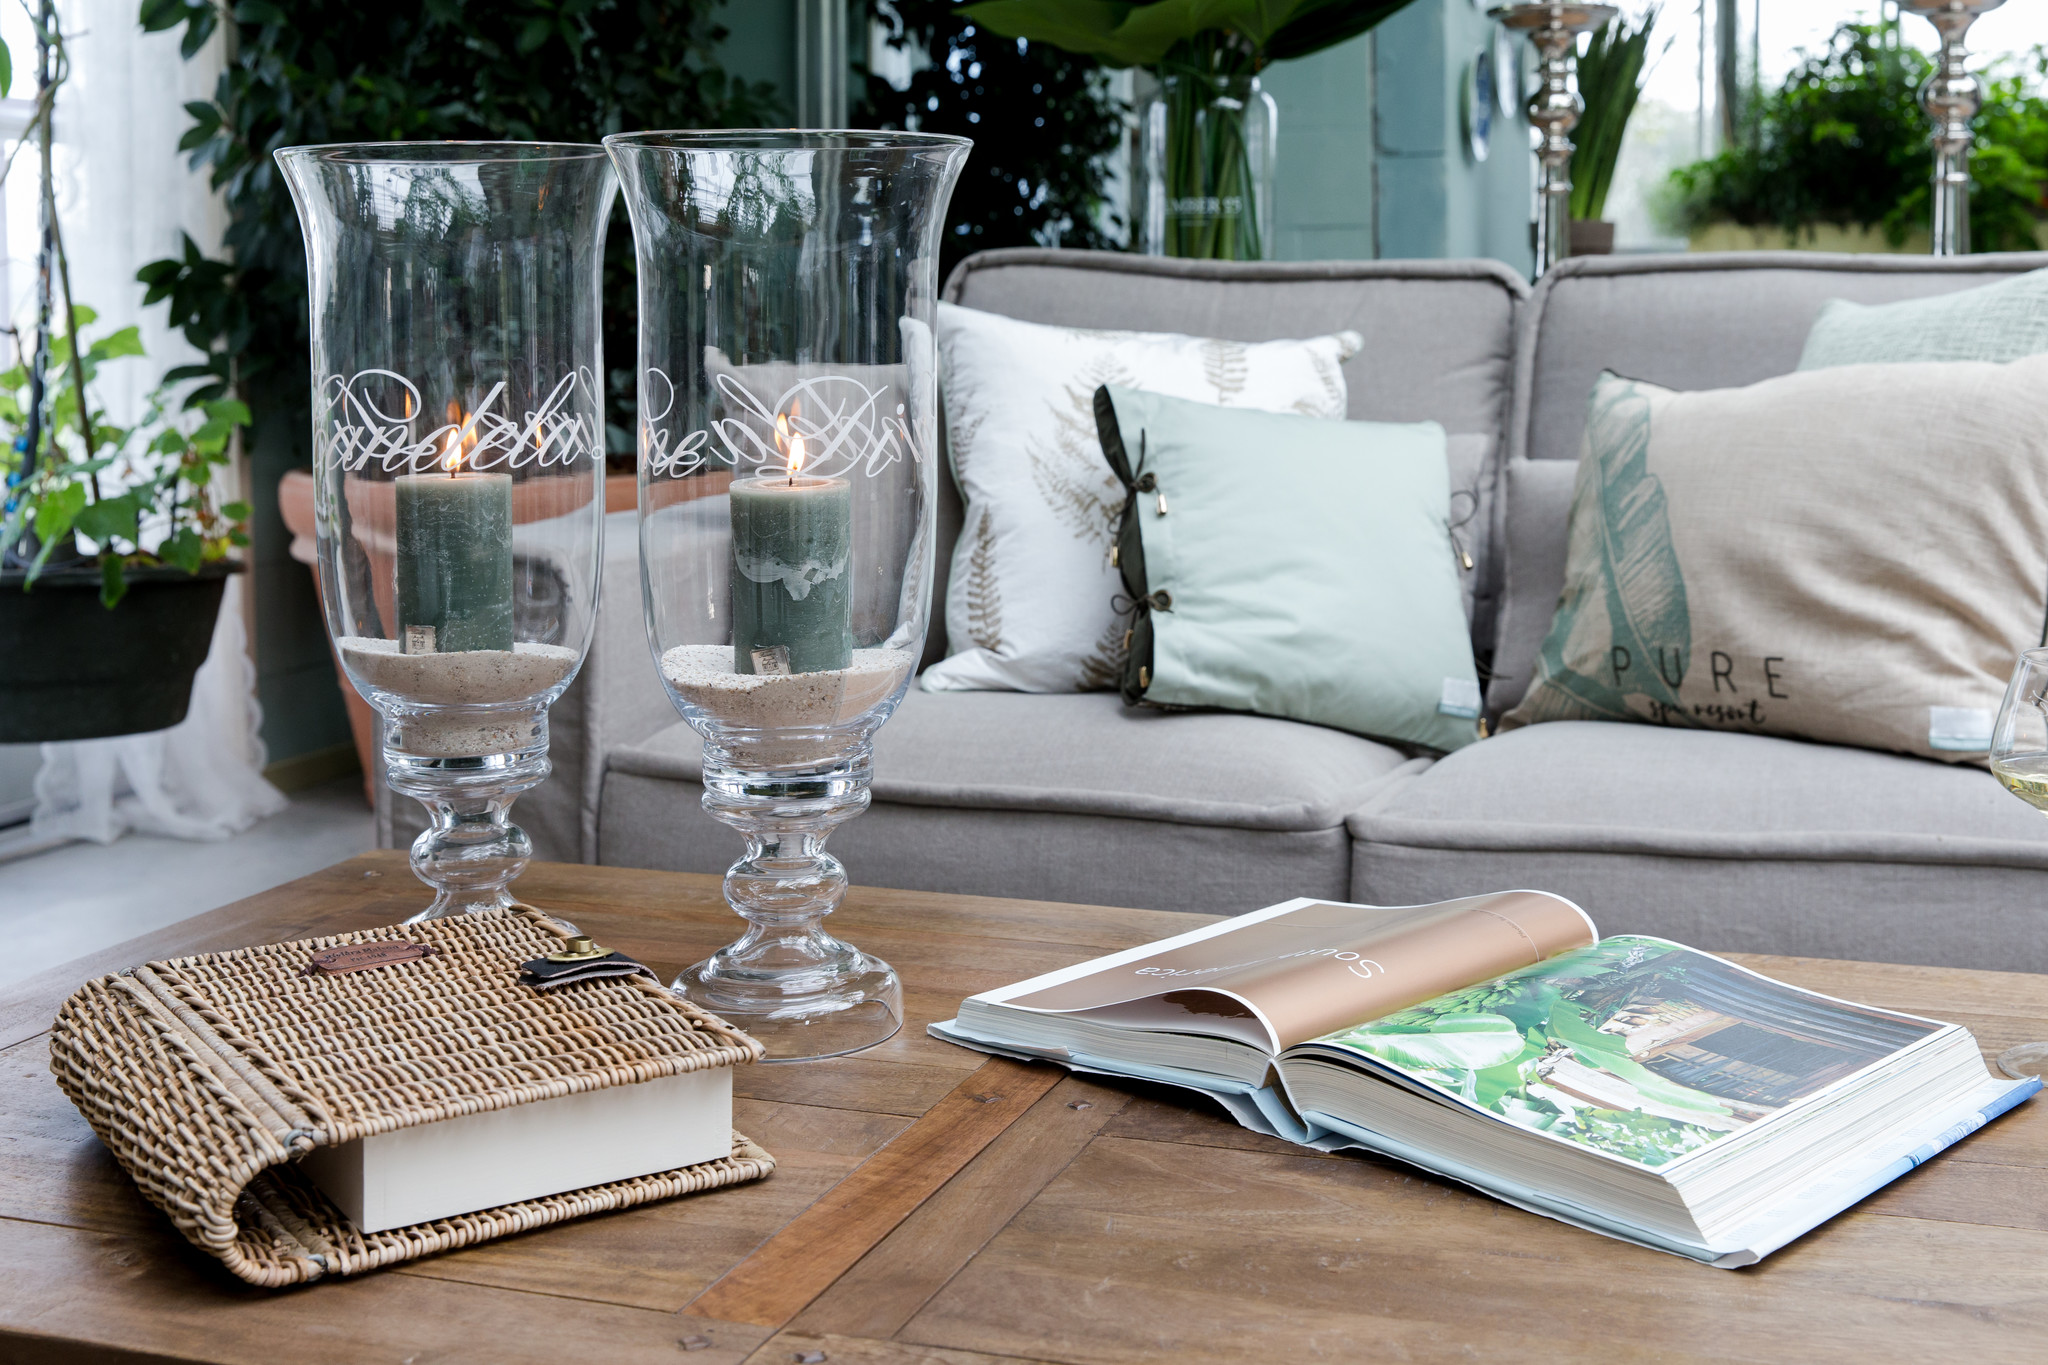 Riviera maison furniture and homewares t kerst